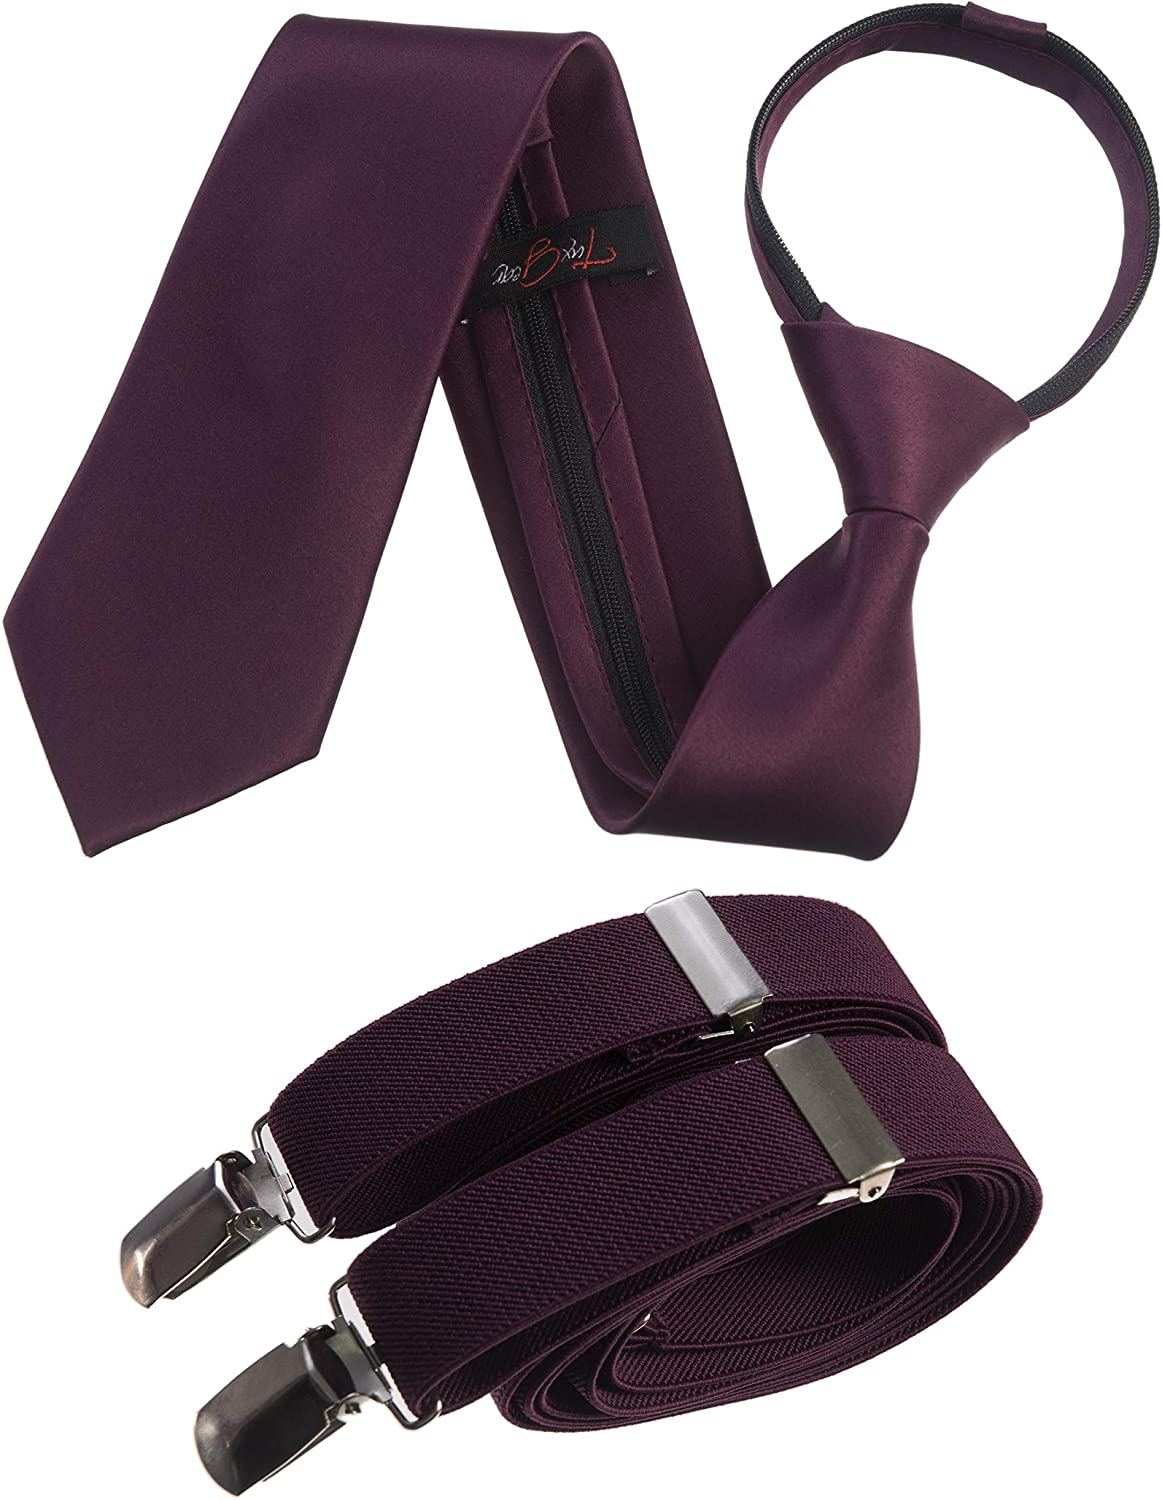 Tuxgear Mens Neck Tie and Adjustable Stretch Suspender Sets in Assorted Colors